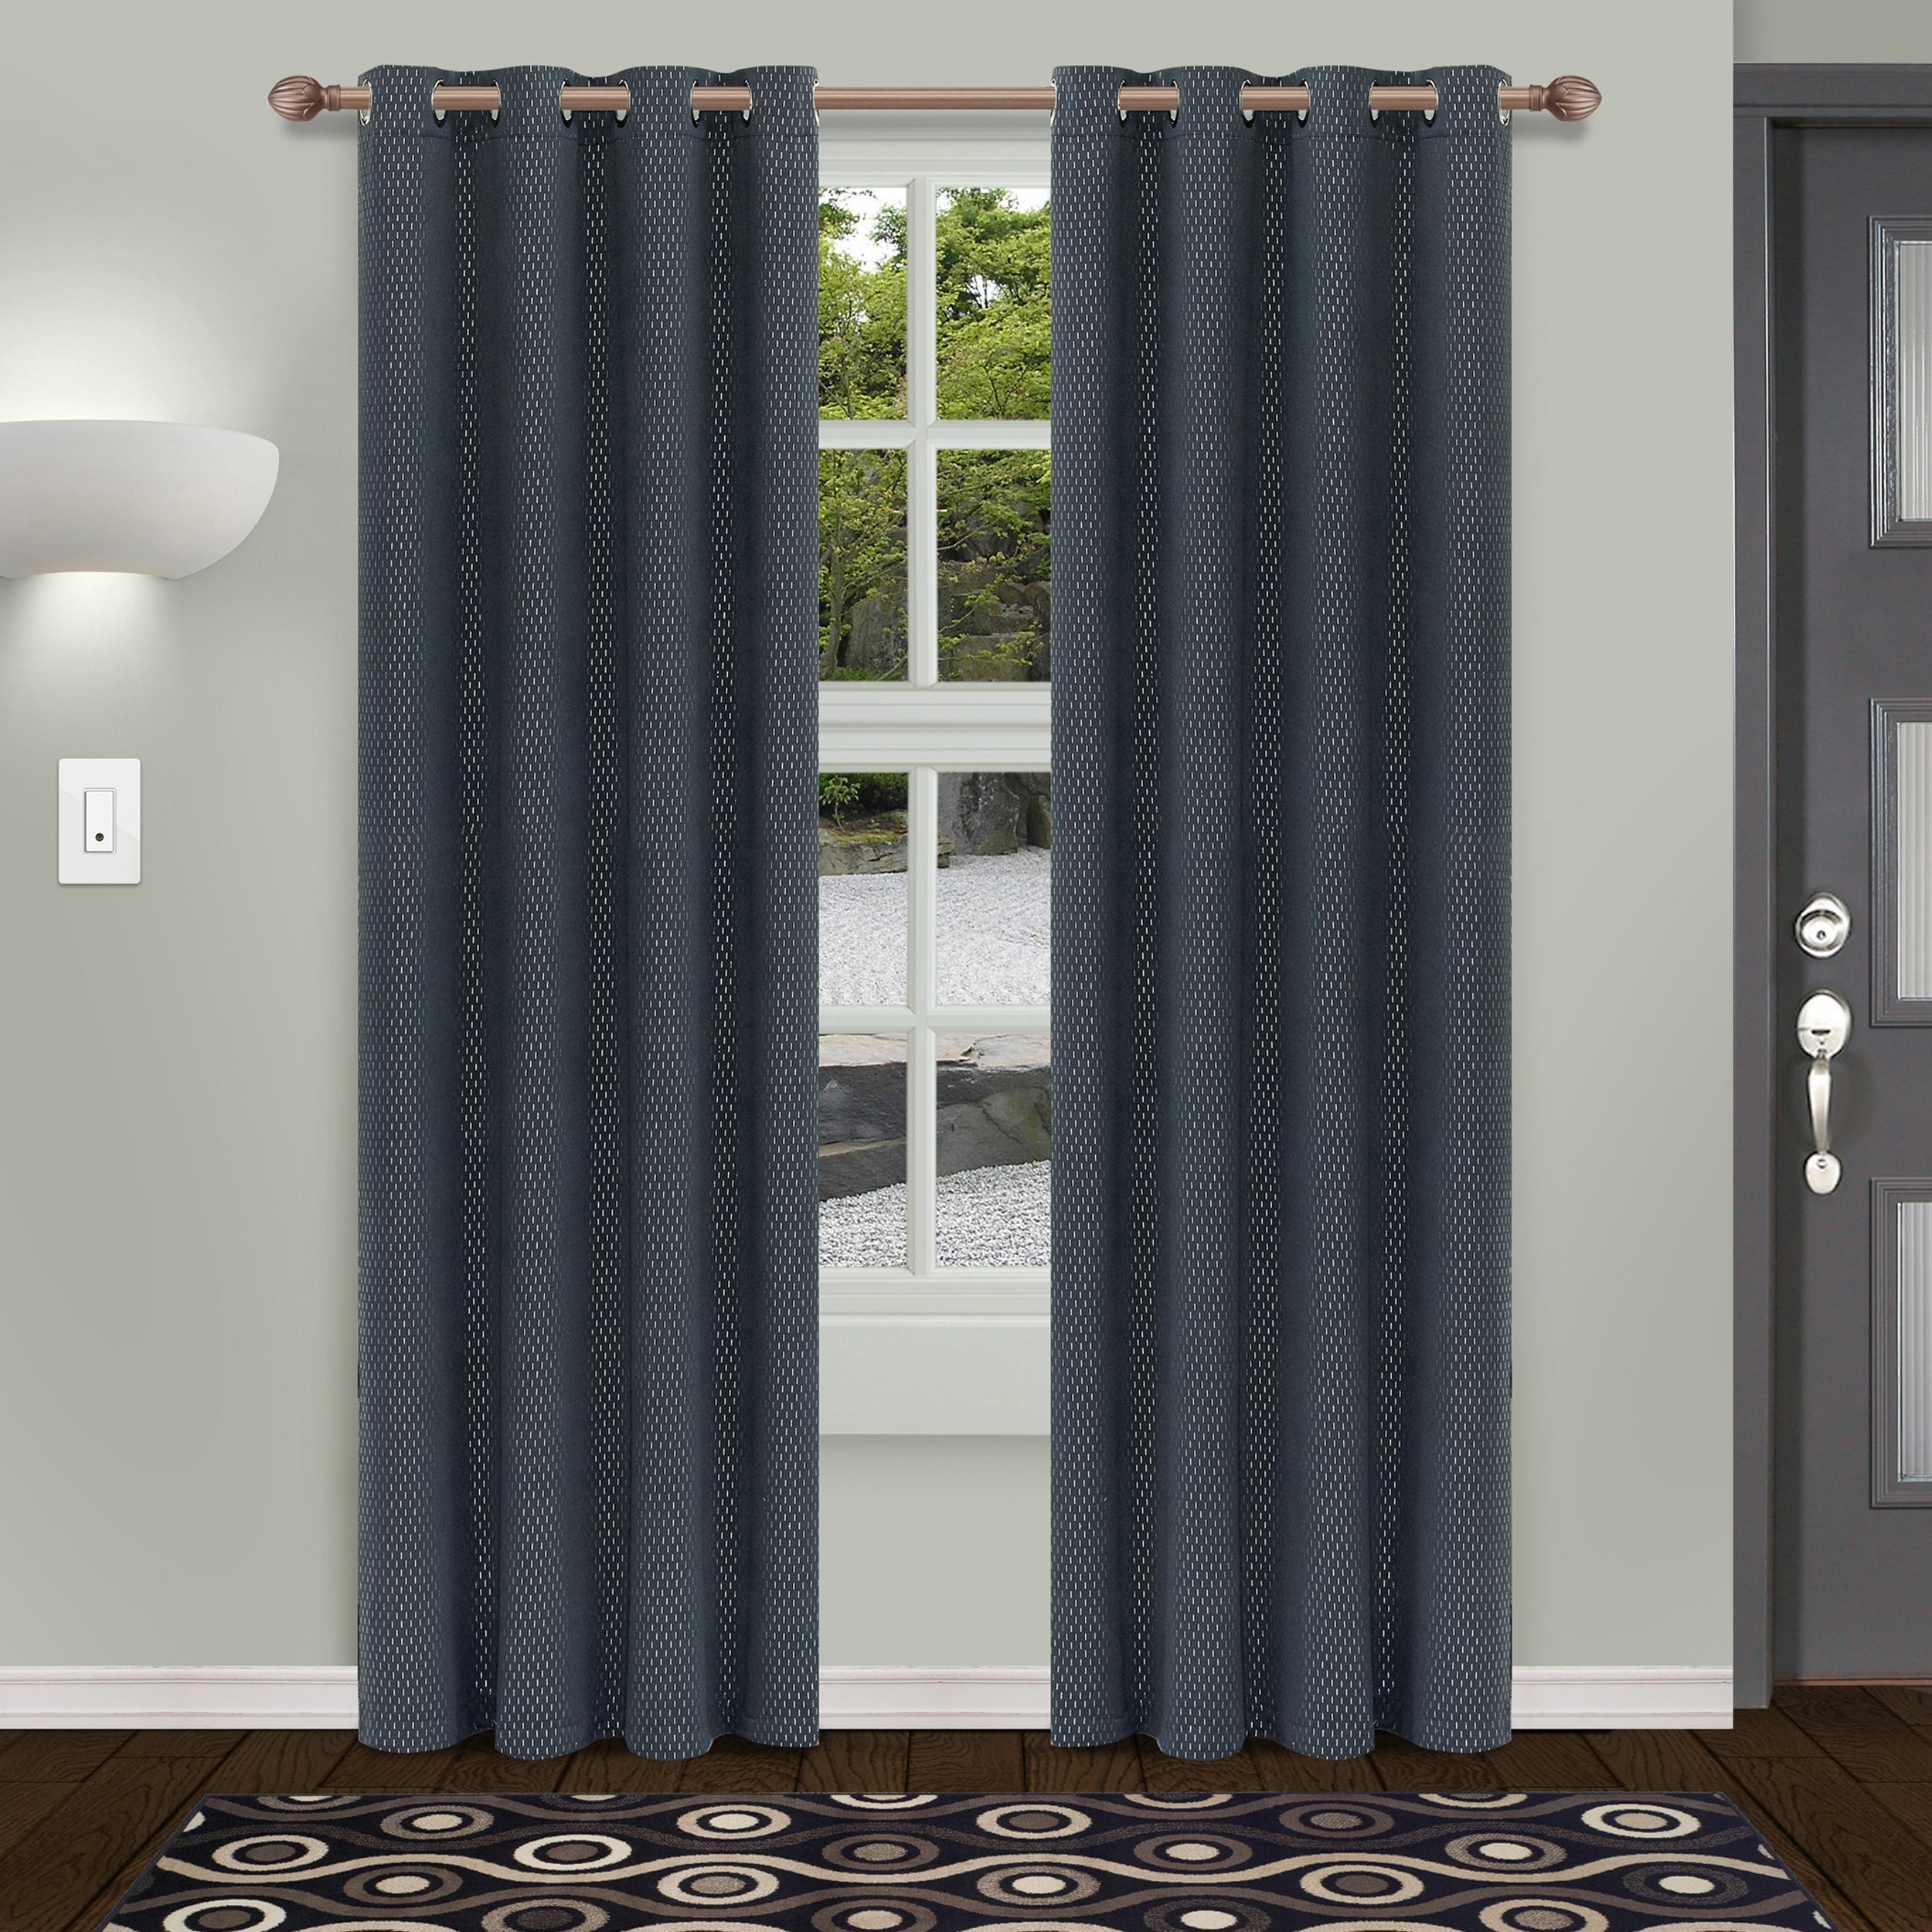 Superior Shimmer Insulated Thermal Blackout Grommet Curtain Panel Pair Pertaining To Embossed Thermal Weaved Blackout Grommet Drapery Curtains (View 14 of 20)